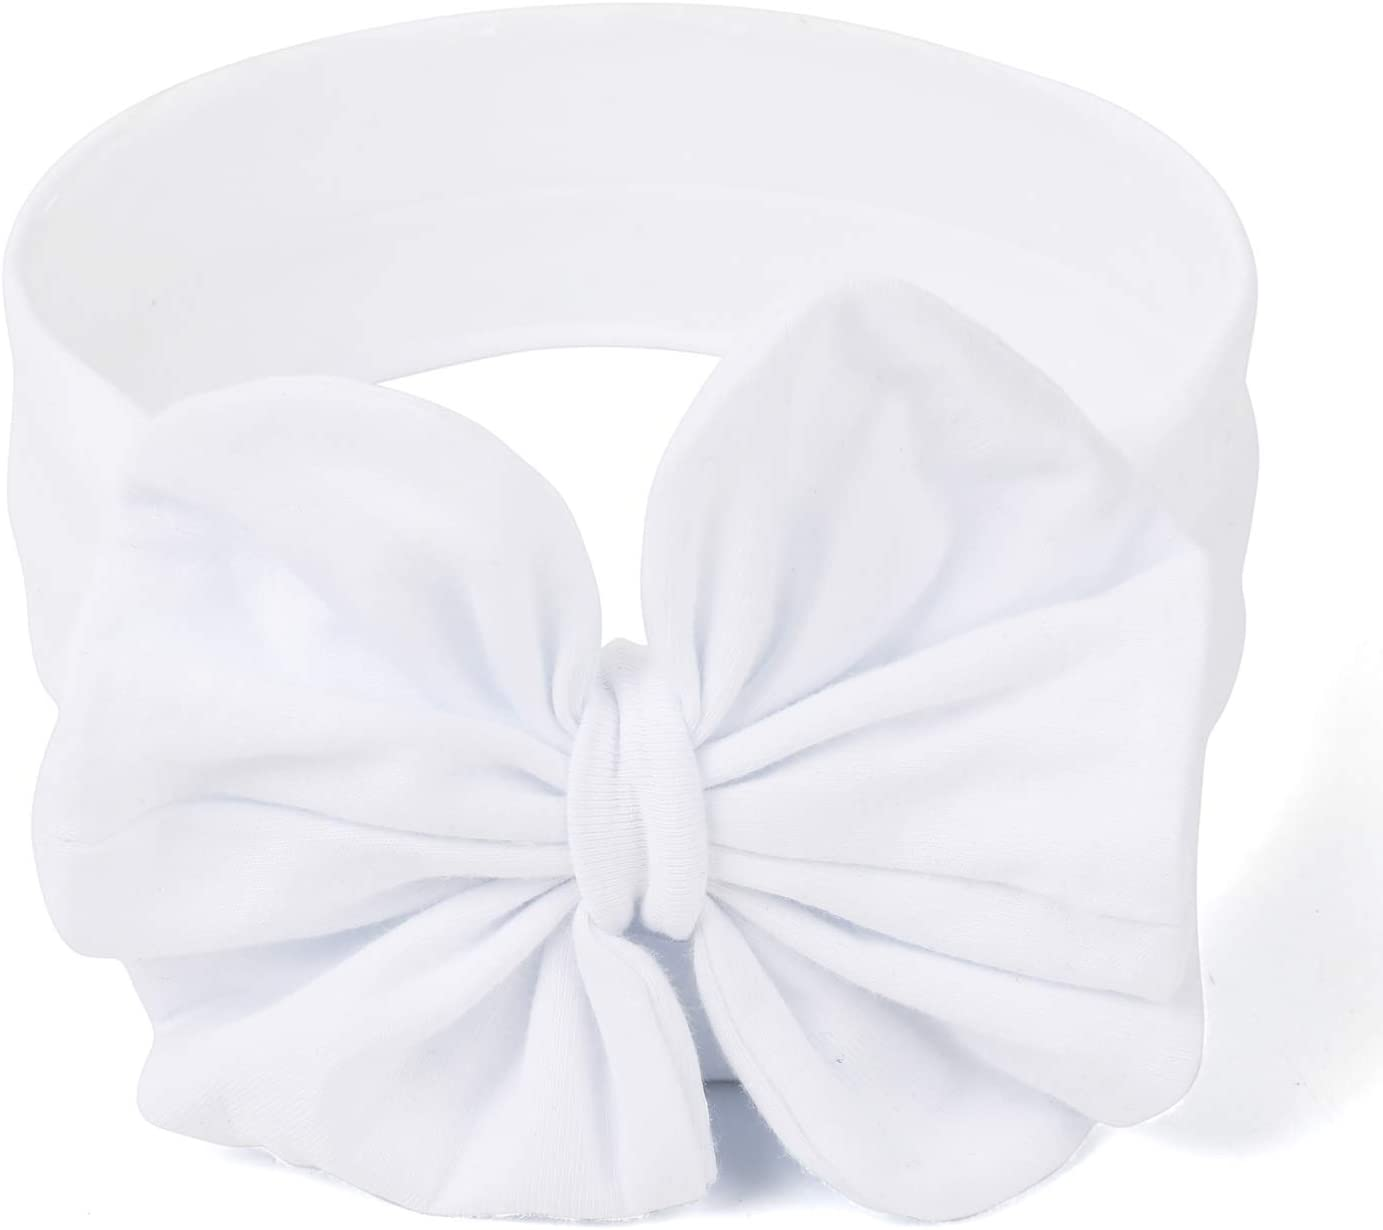 COUXILY Baby Girls Knotted Headbands Turban Knotted Headbands Bow Headbands 03, XS 0-3 Months